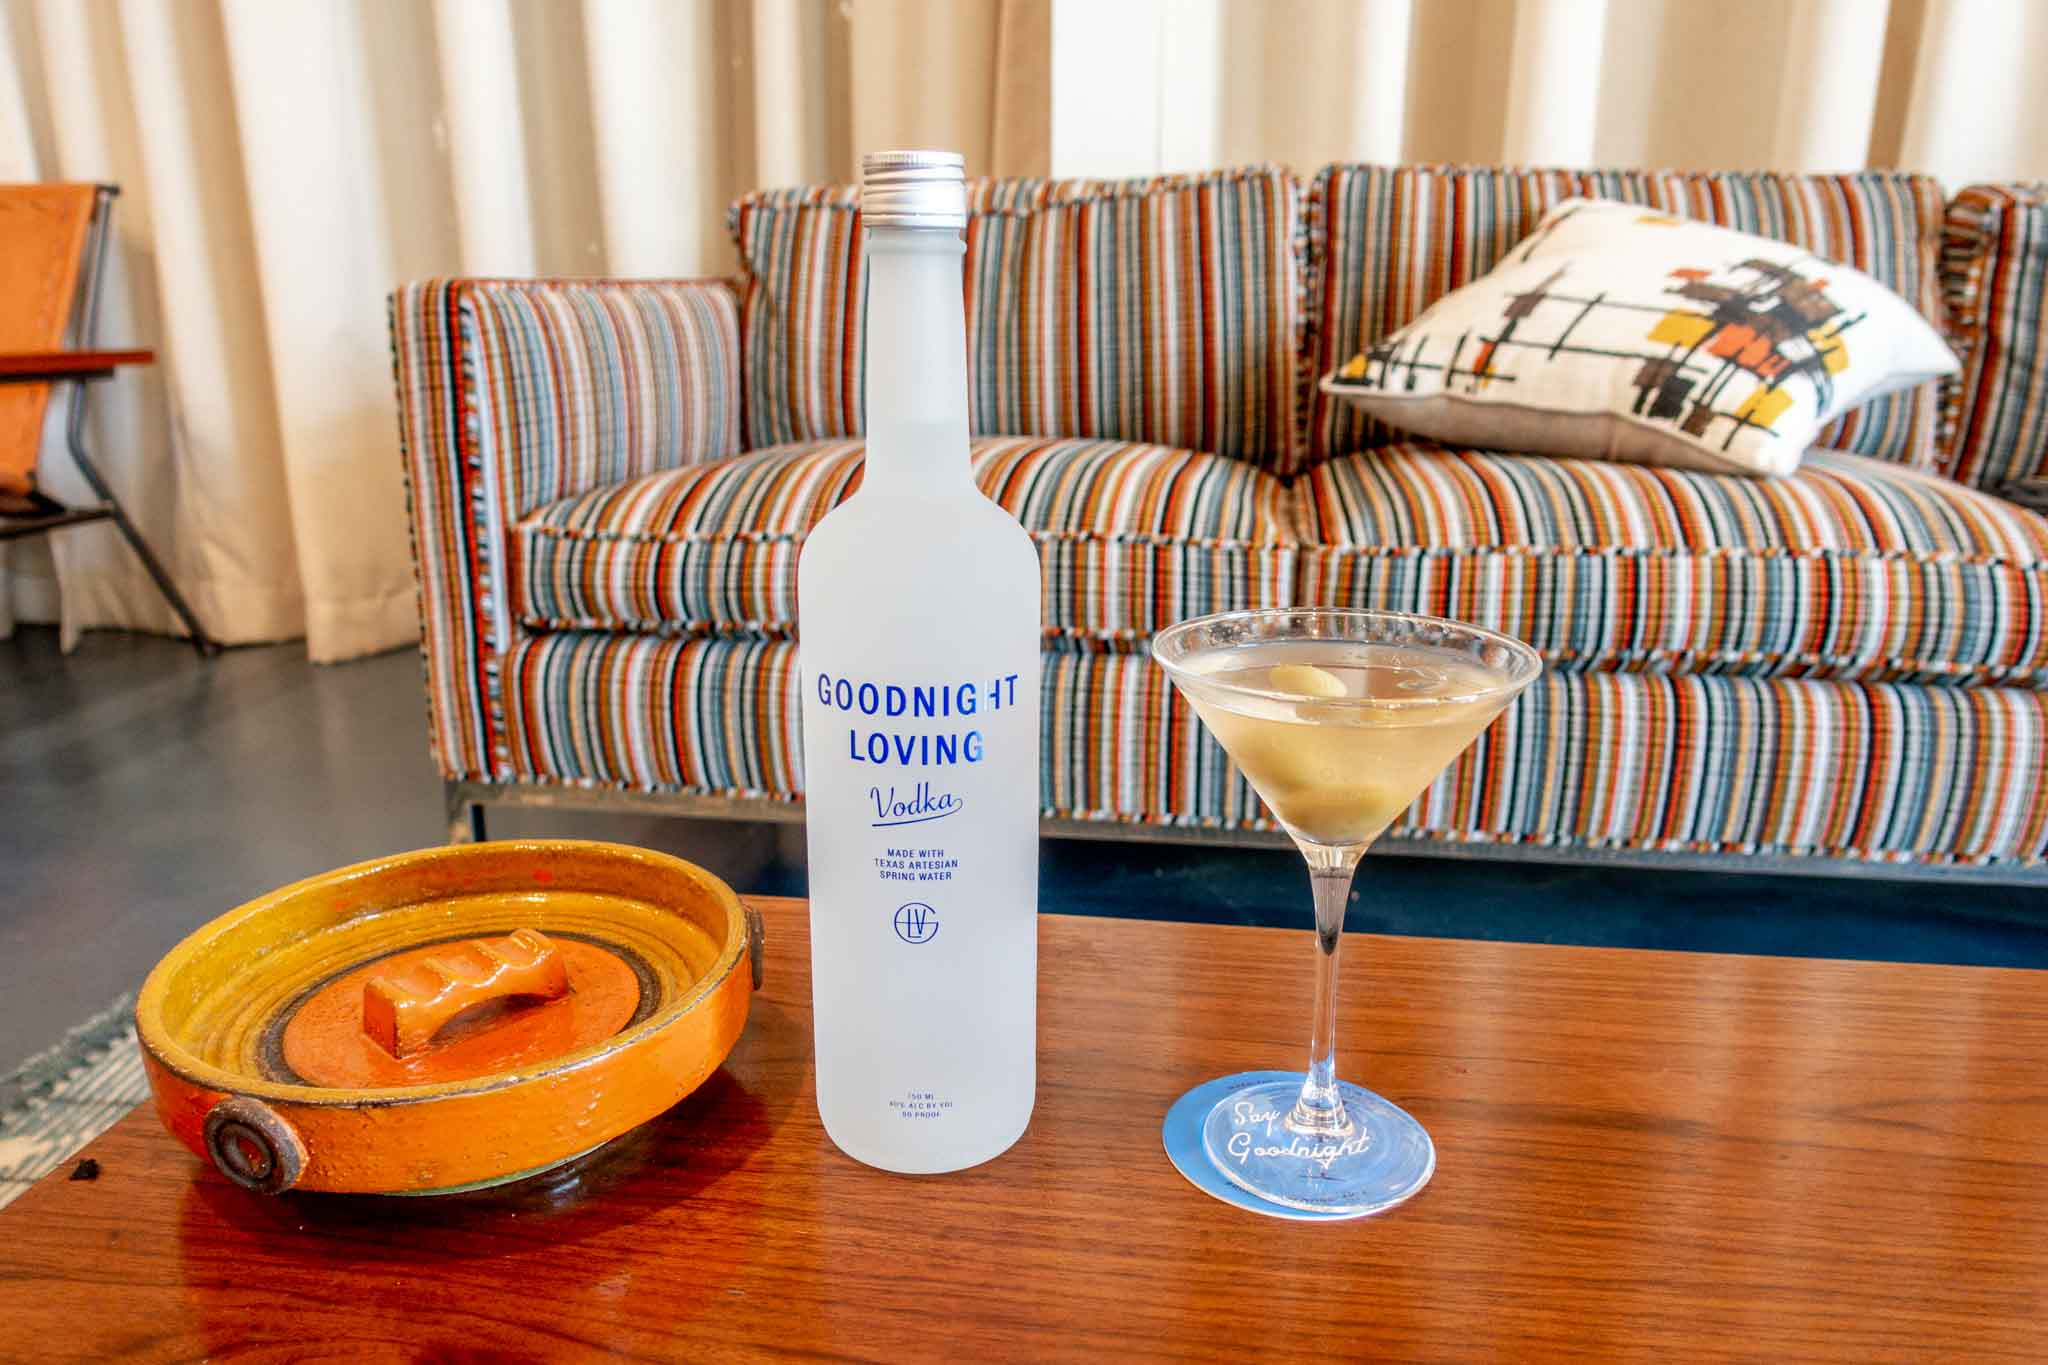 Bottle of Goodnight Loving vodka and a martini in 1960s-inspired room